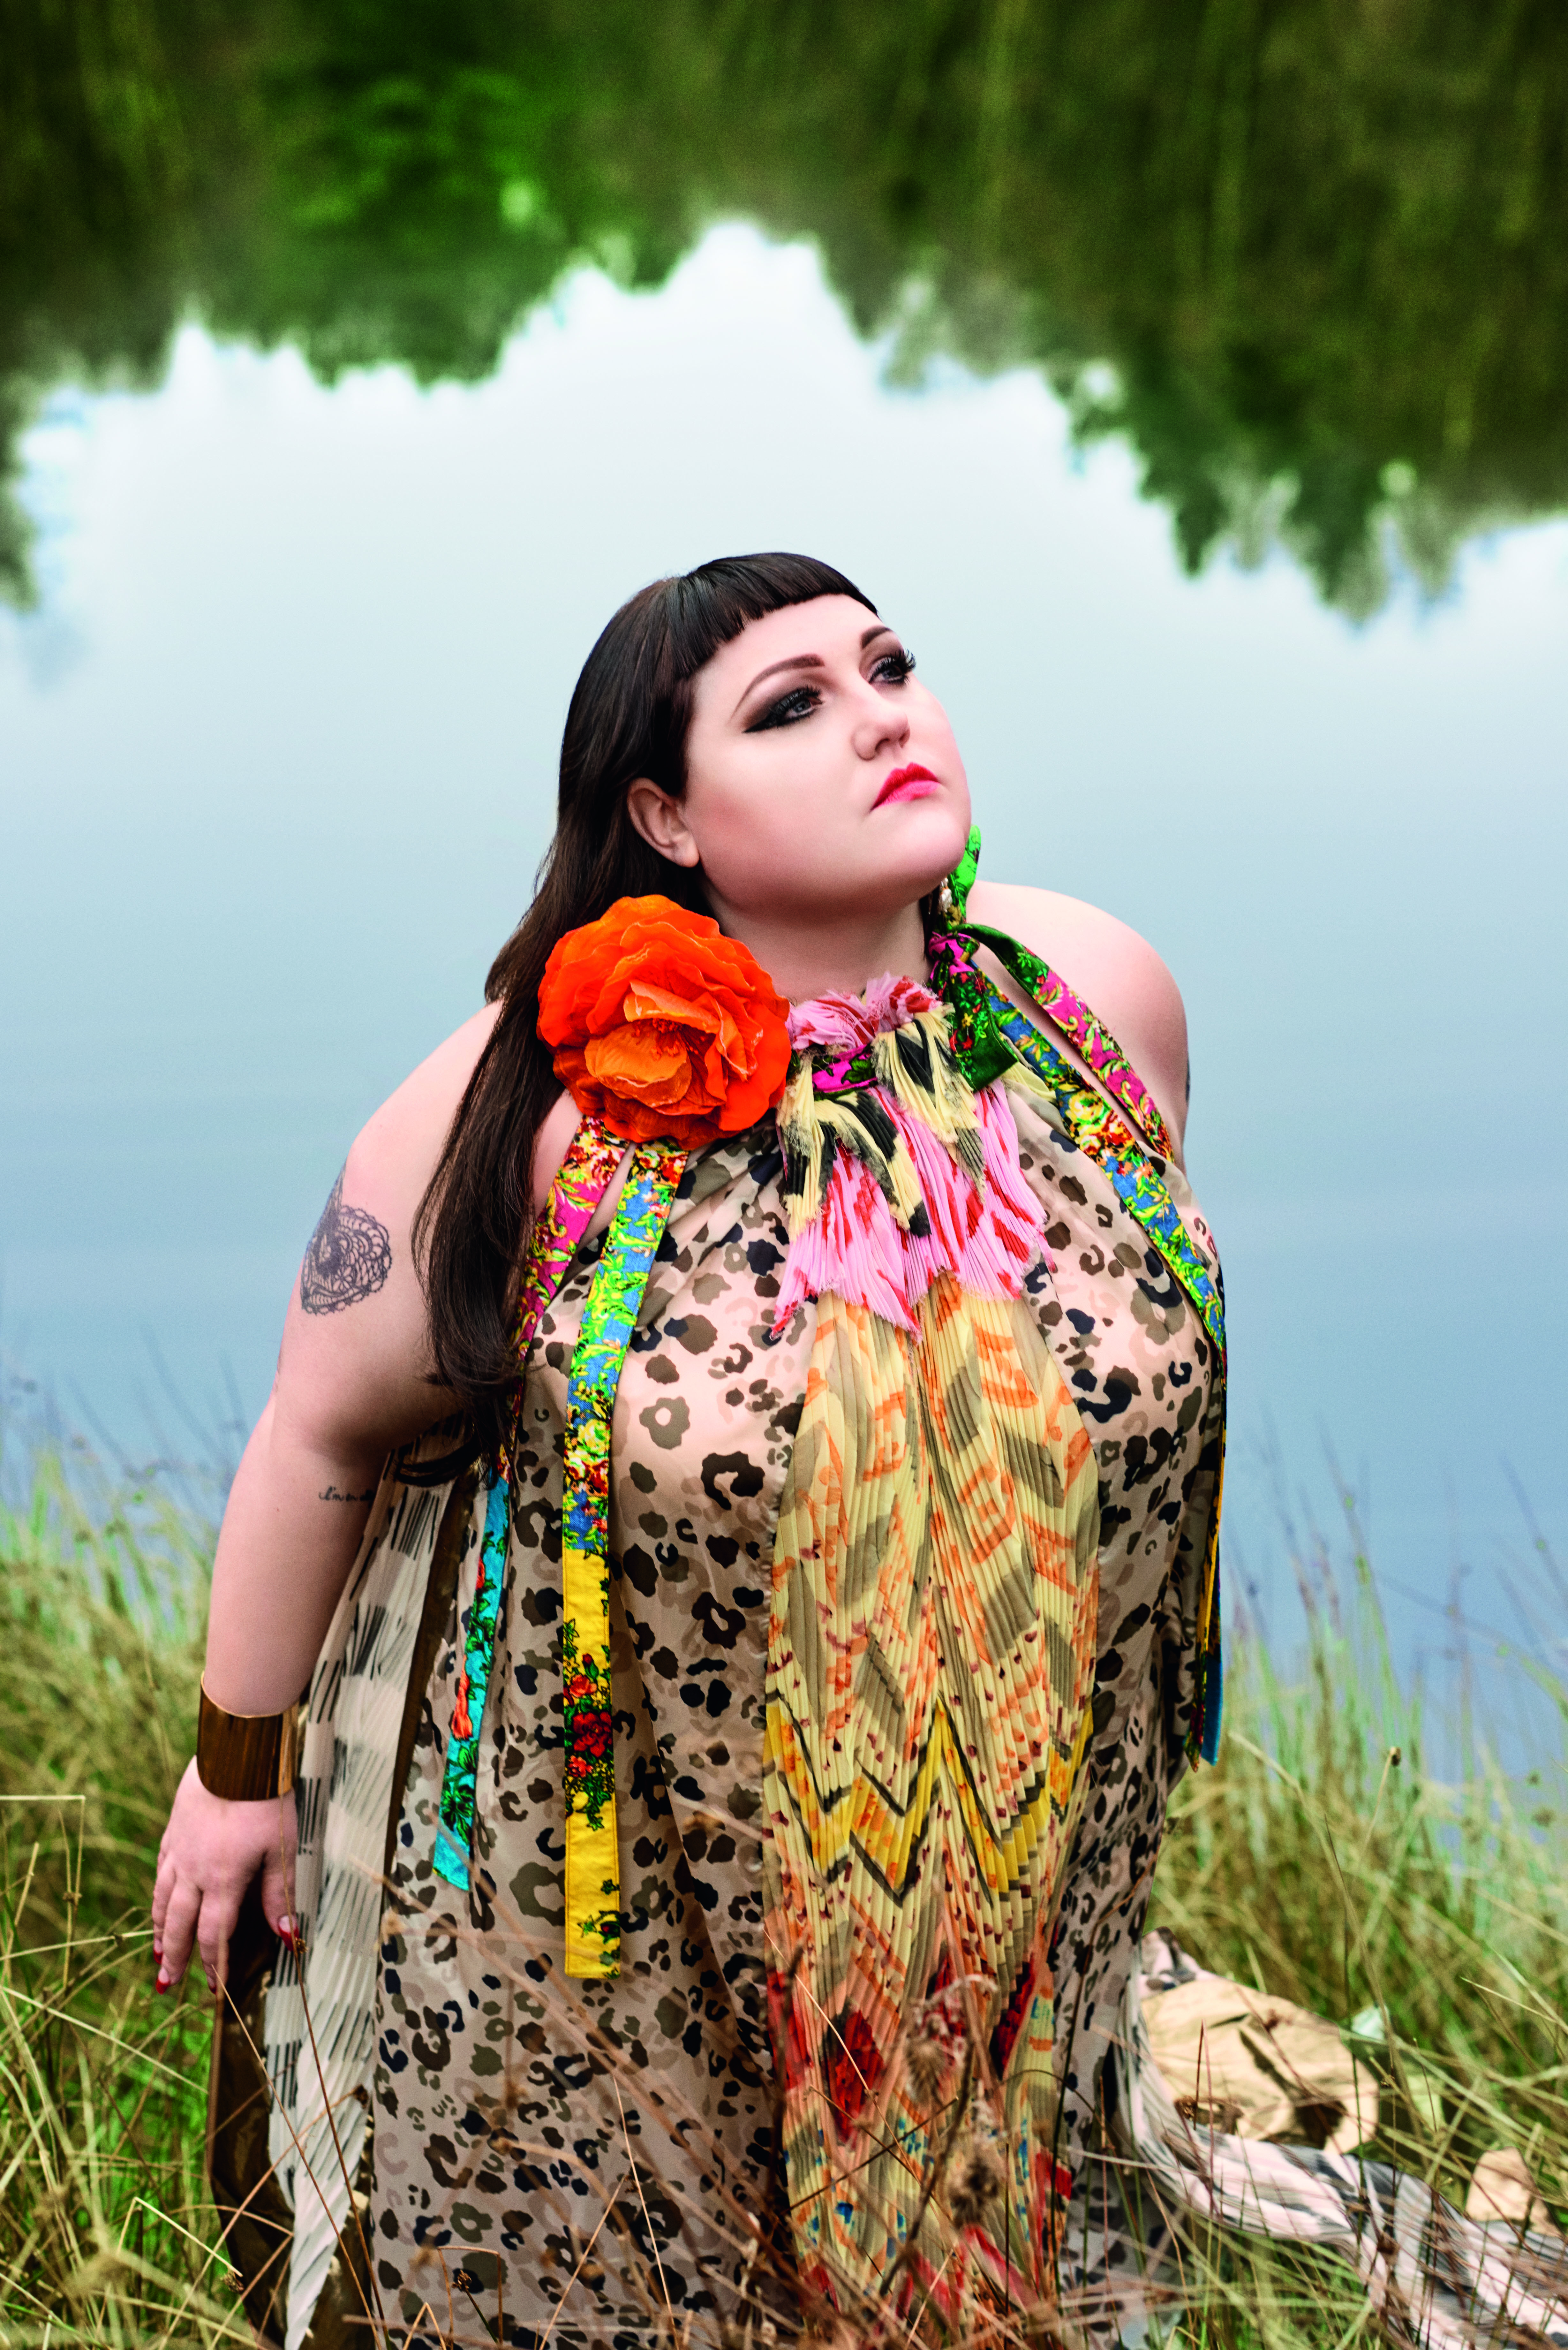 beth-ditto-general-image-cmyk